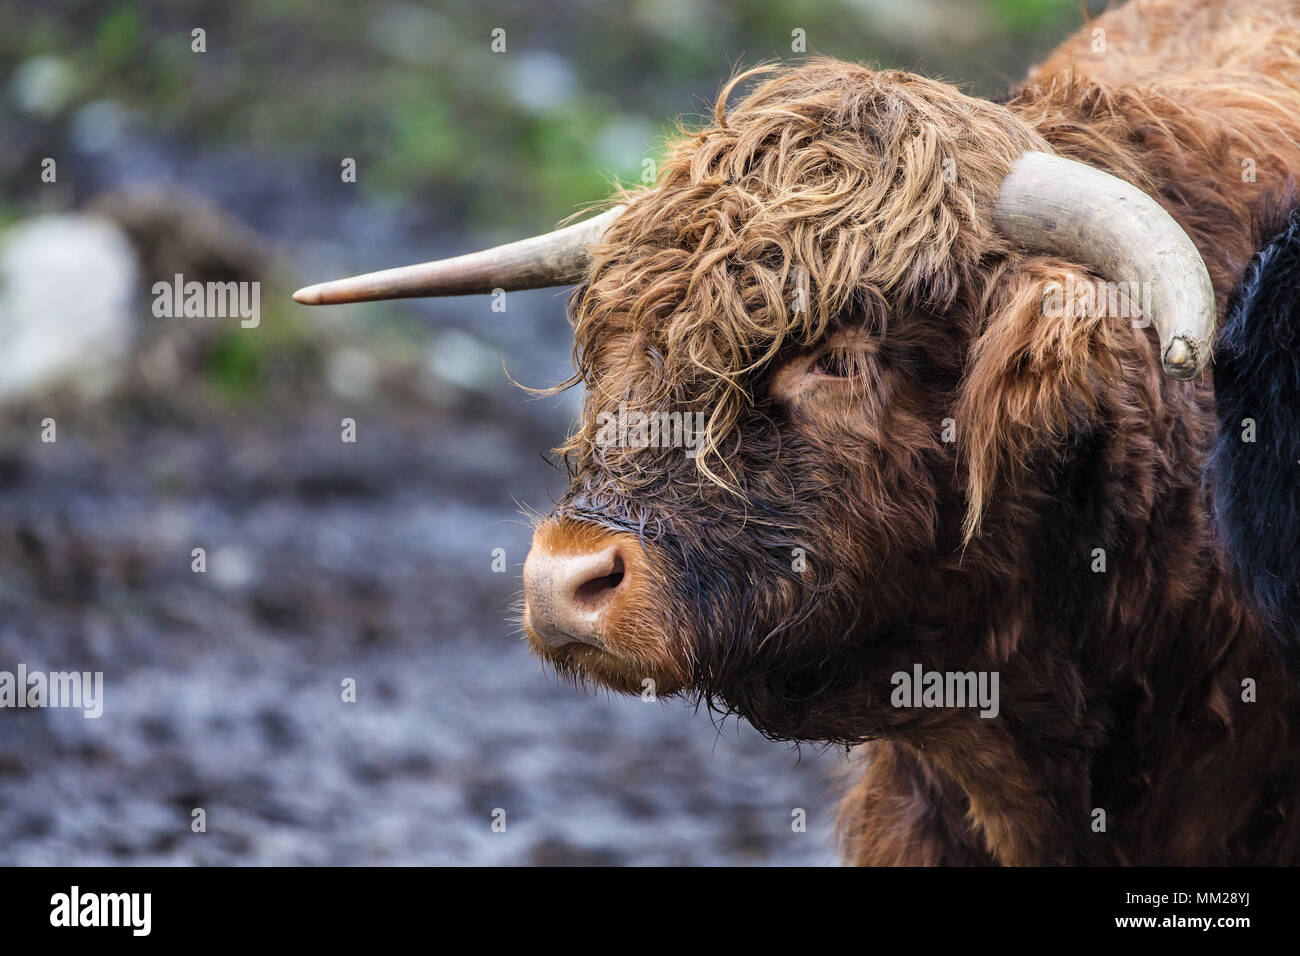 Headshot of a Highland bull in a pasture near Skjolden, Norway. - Stock Image